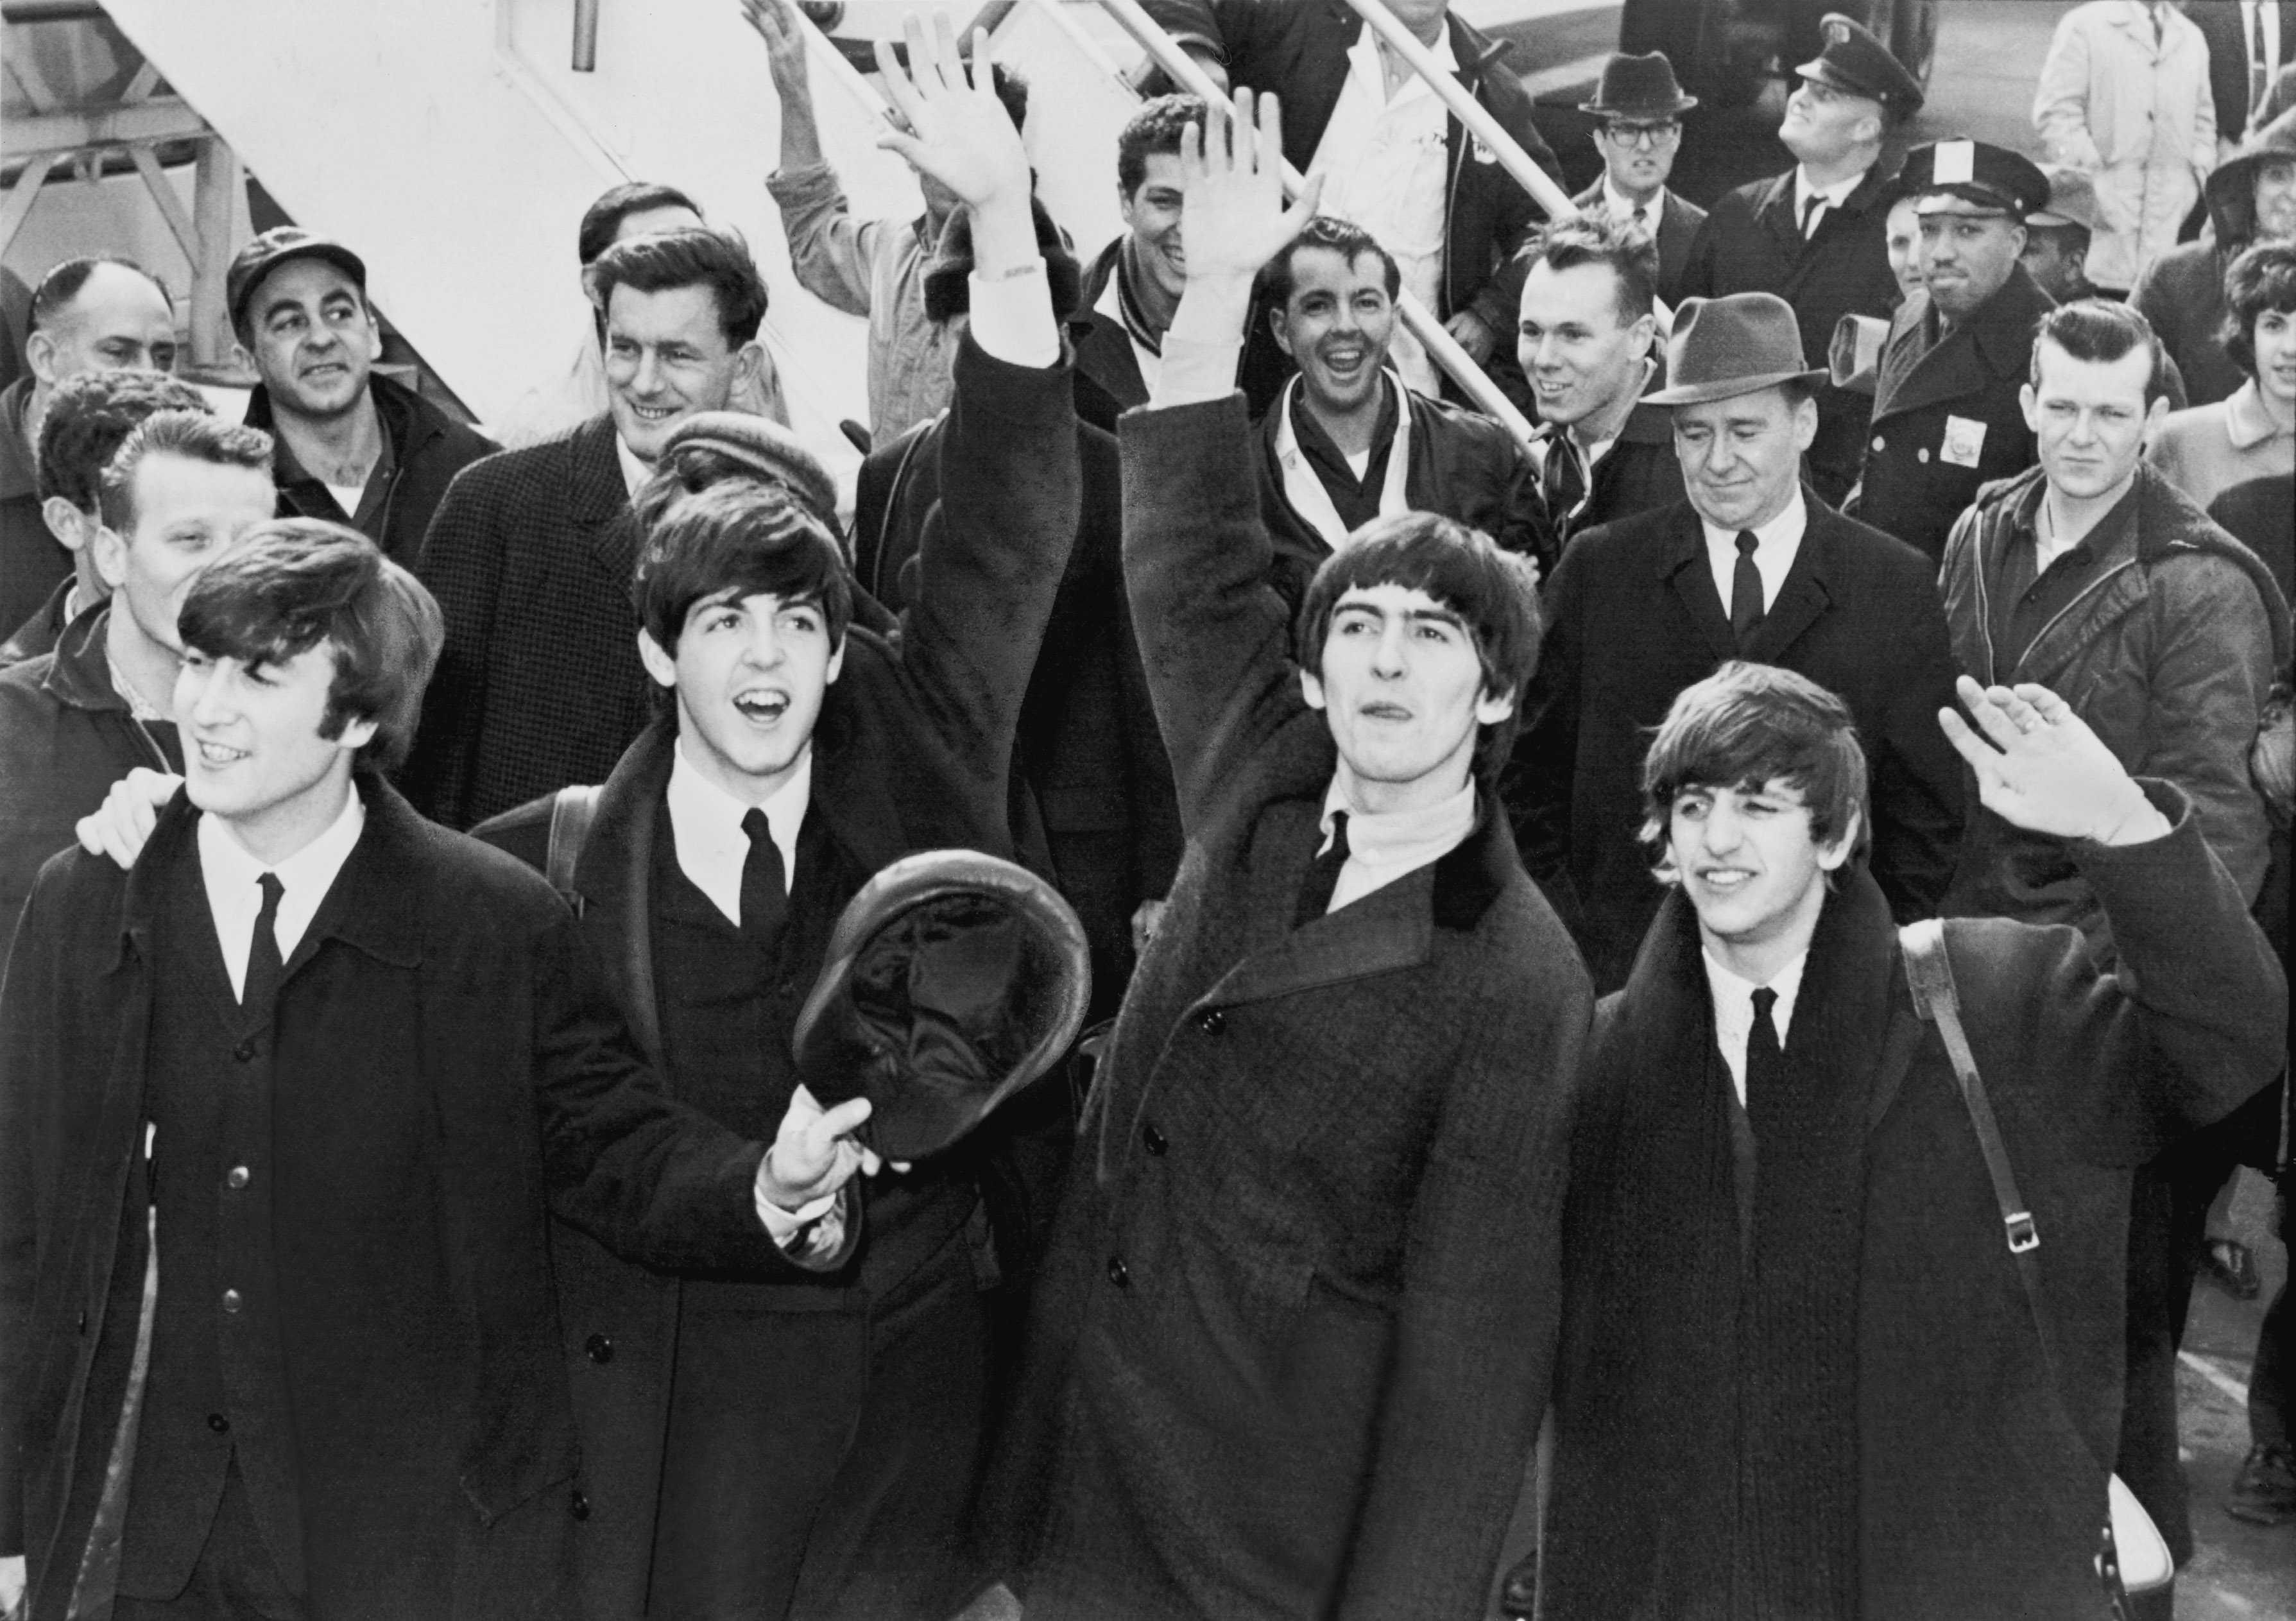 Beatles-50 Years of Marketing Lessons